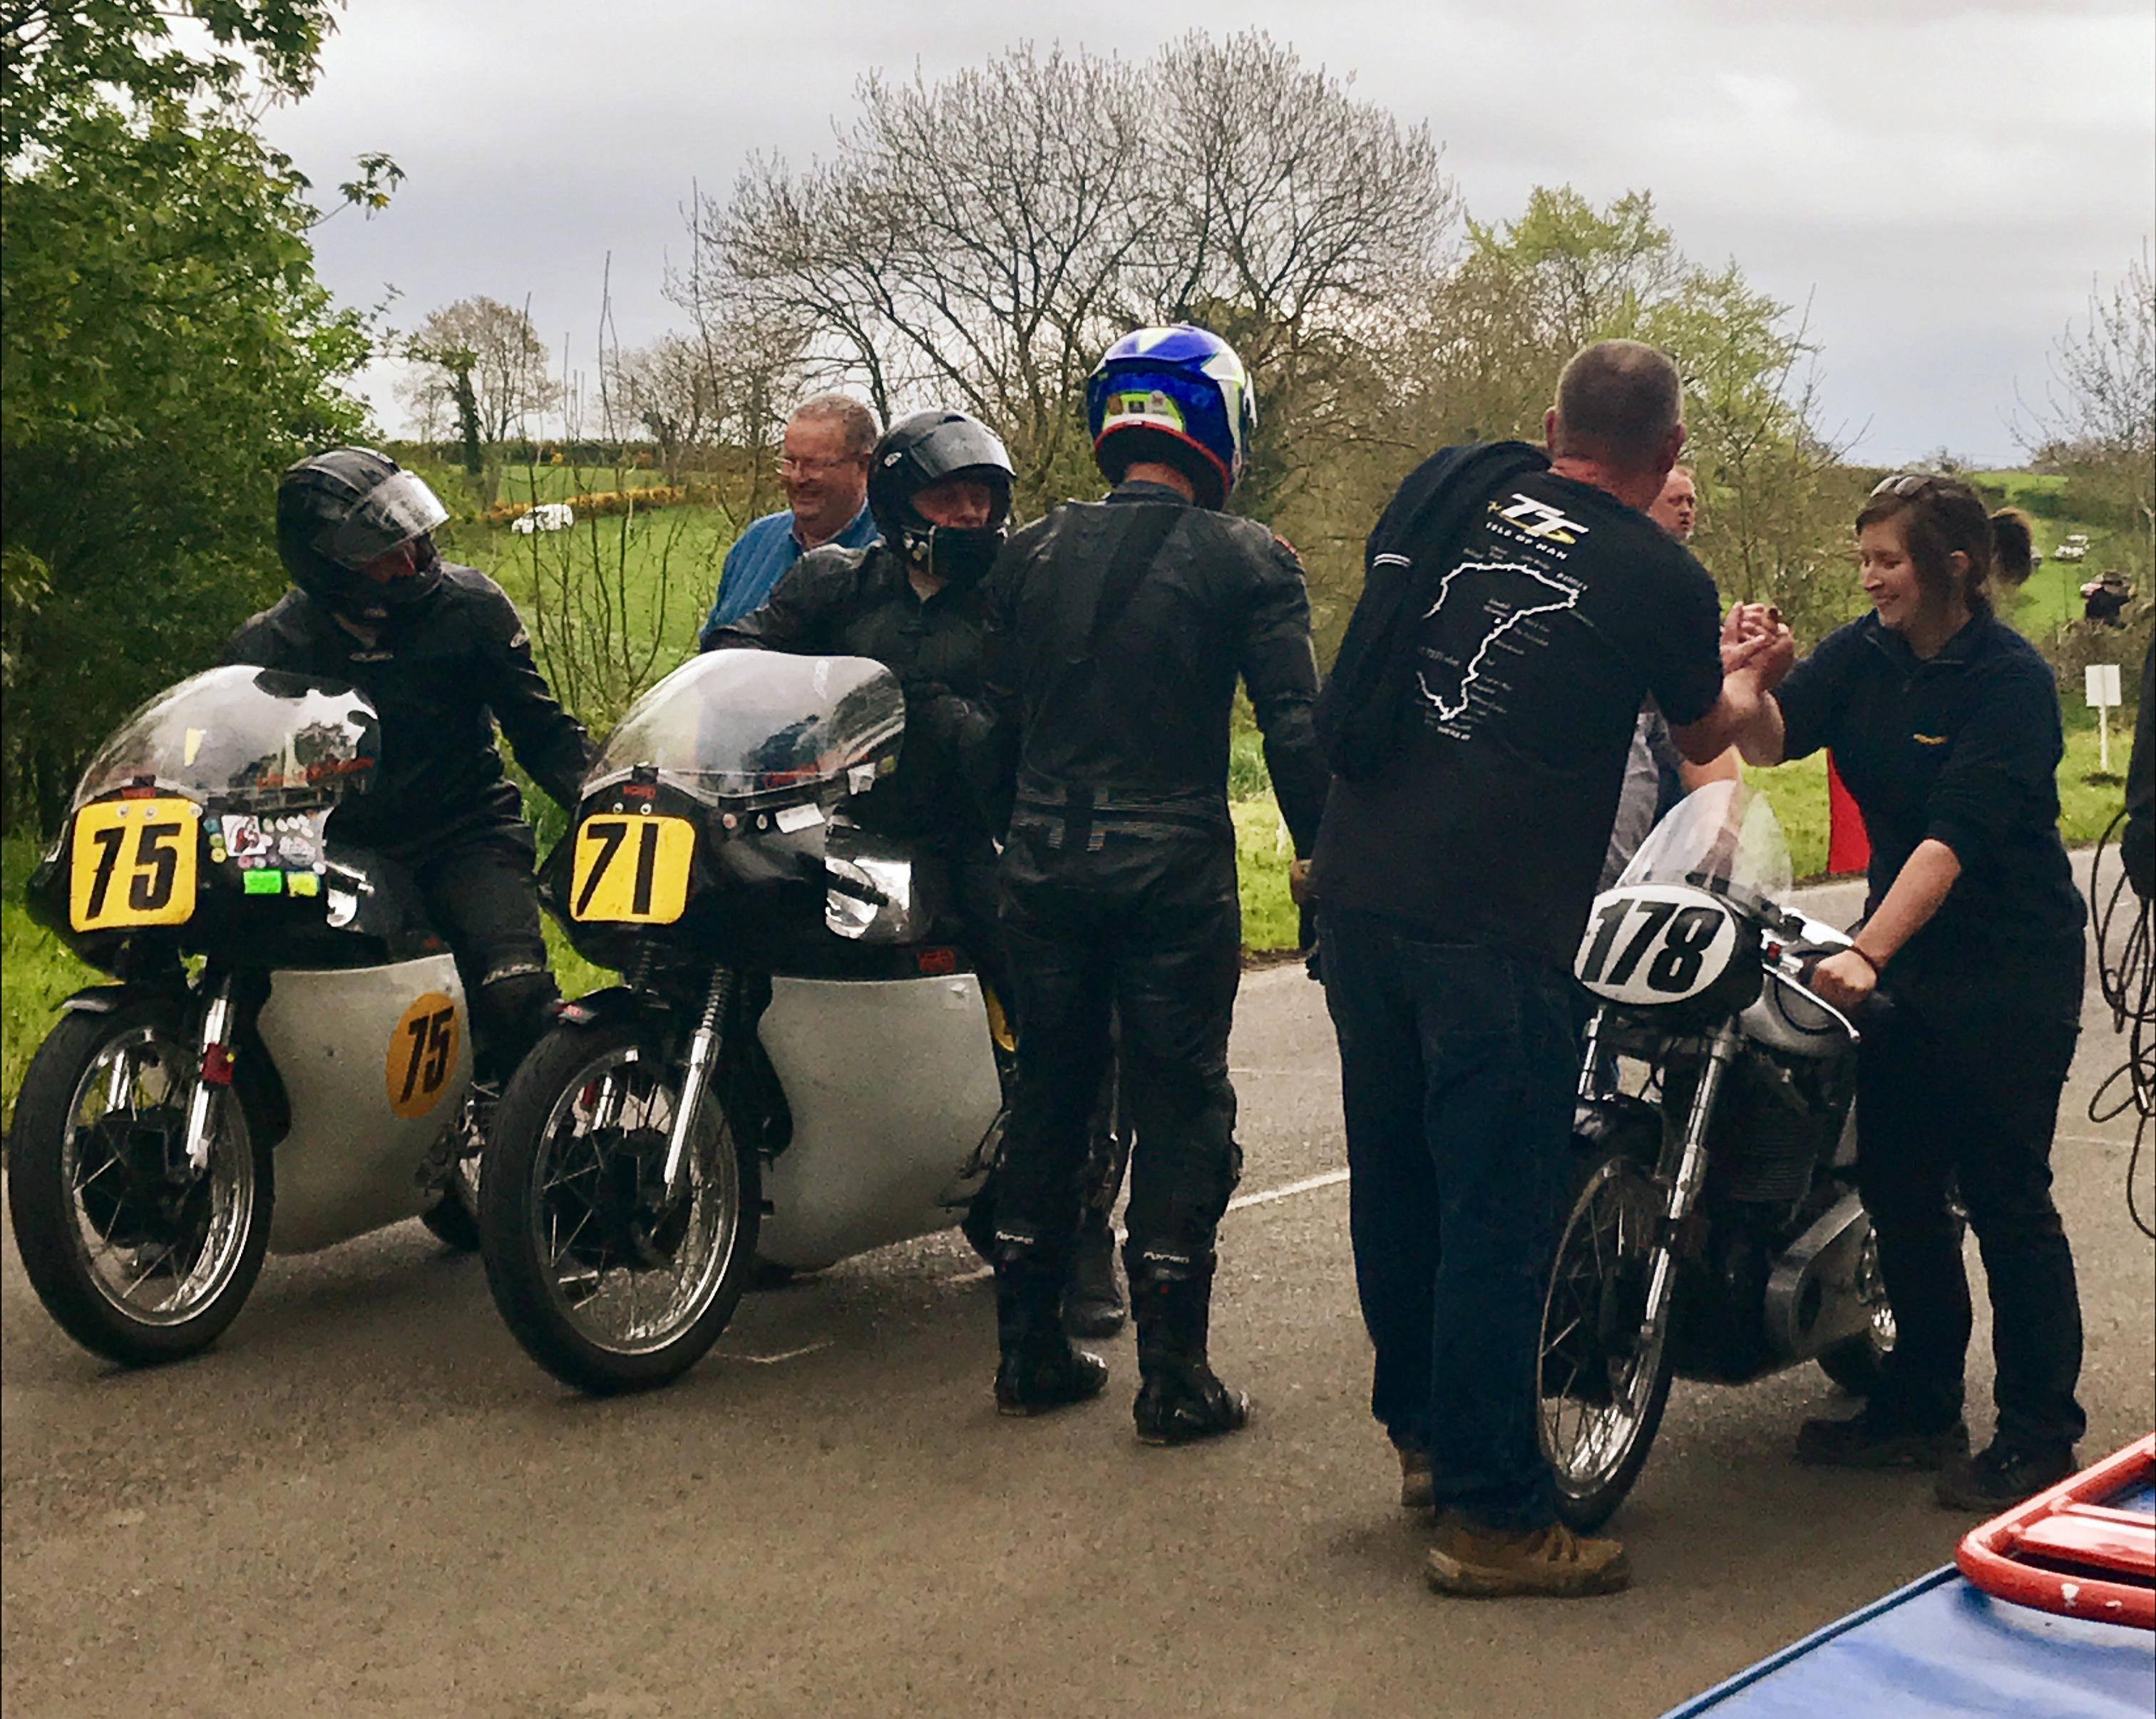 John Leigh-Pemberton, Mark Parrett and Dean Stimpson at the finish.  Thanks to Road Racing Ireland for the picture.